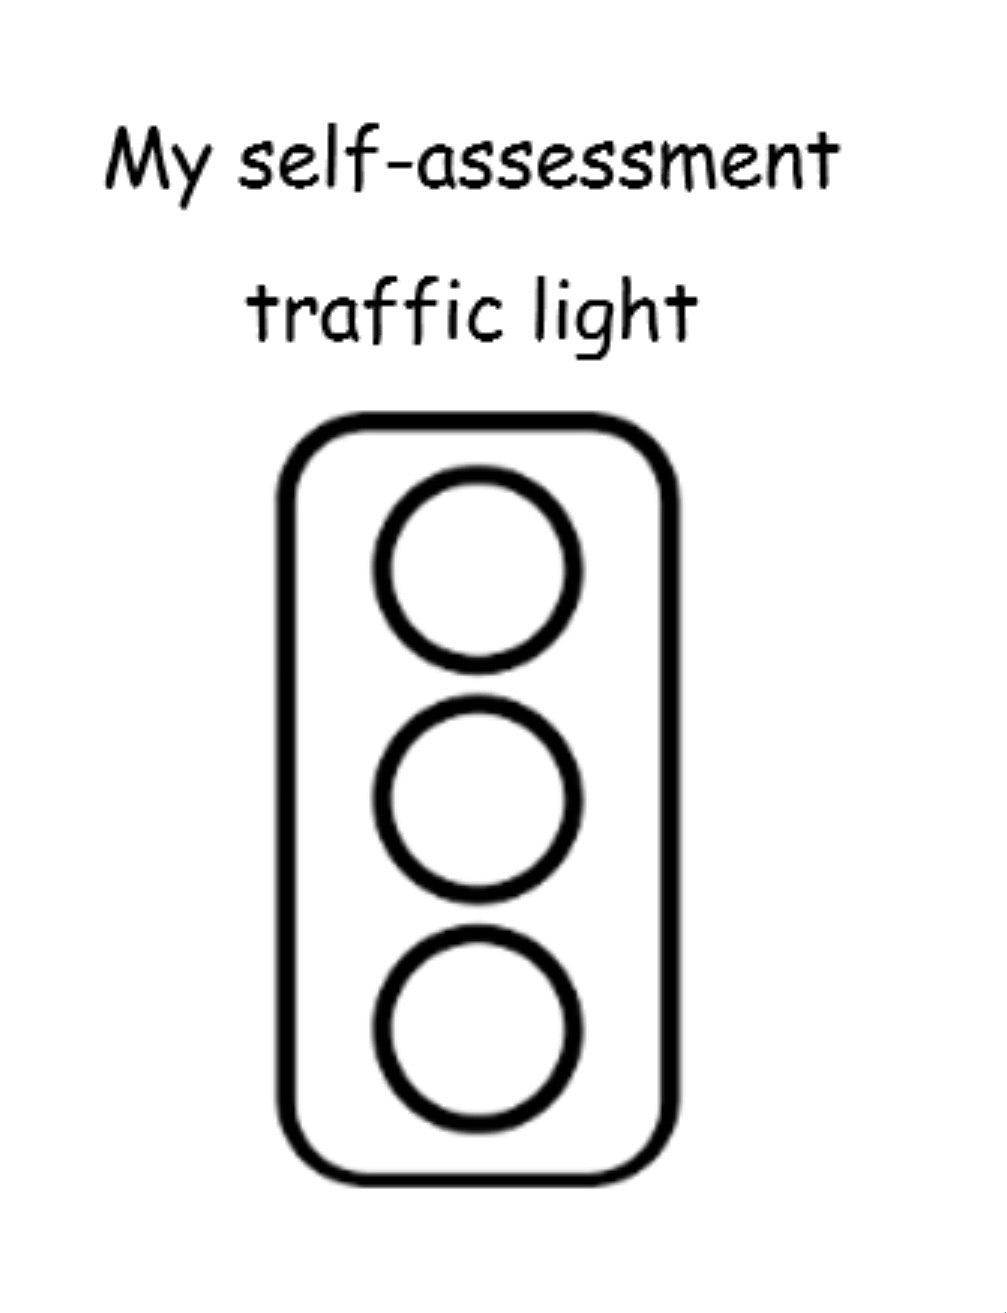 Traffic light Assessment Stamp